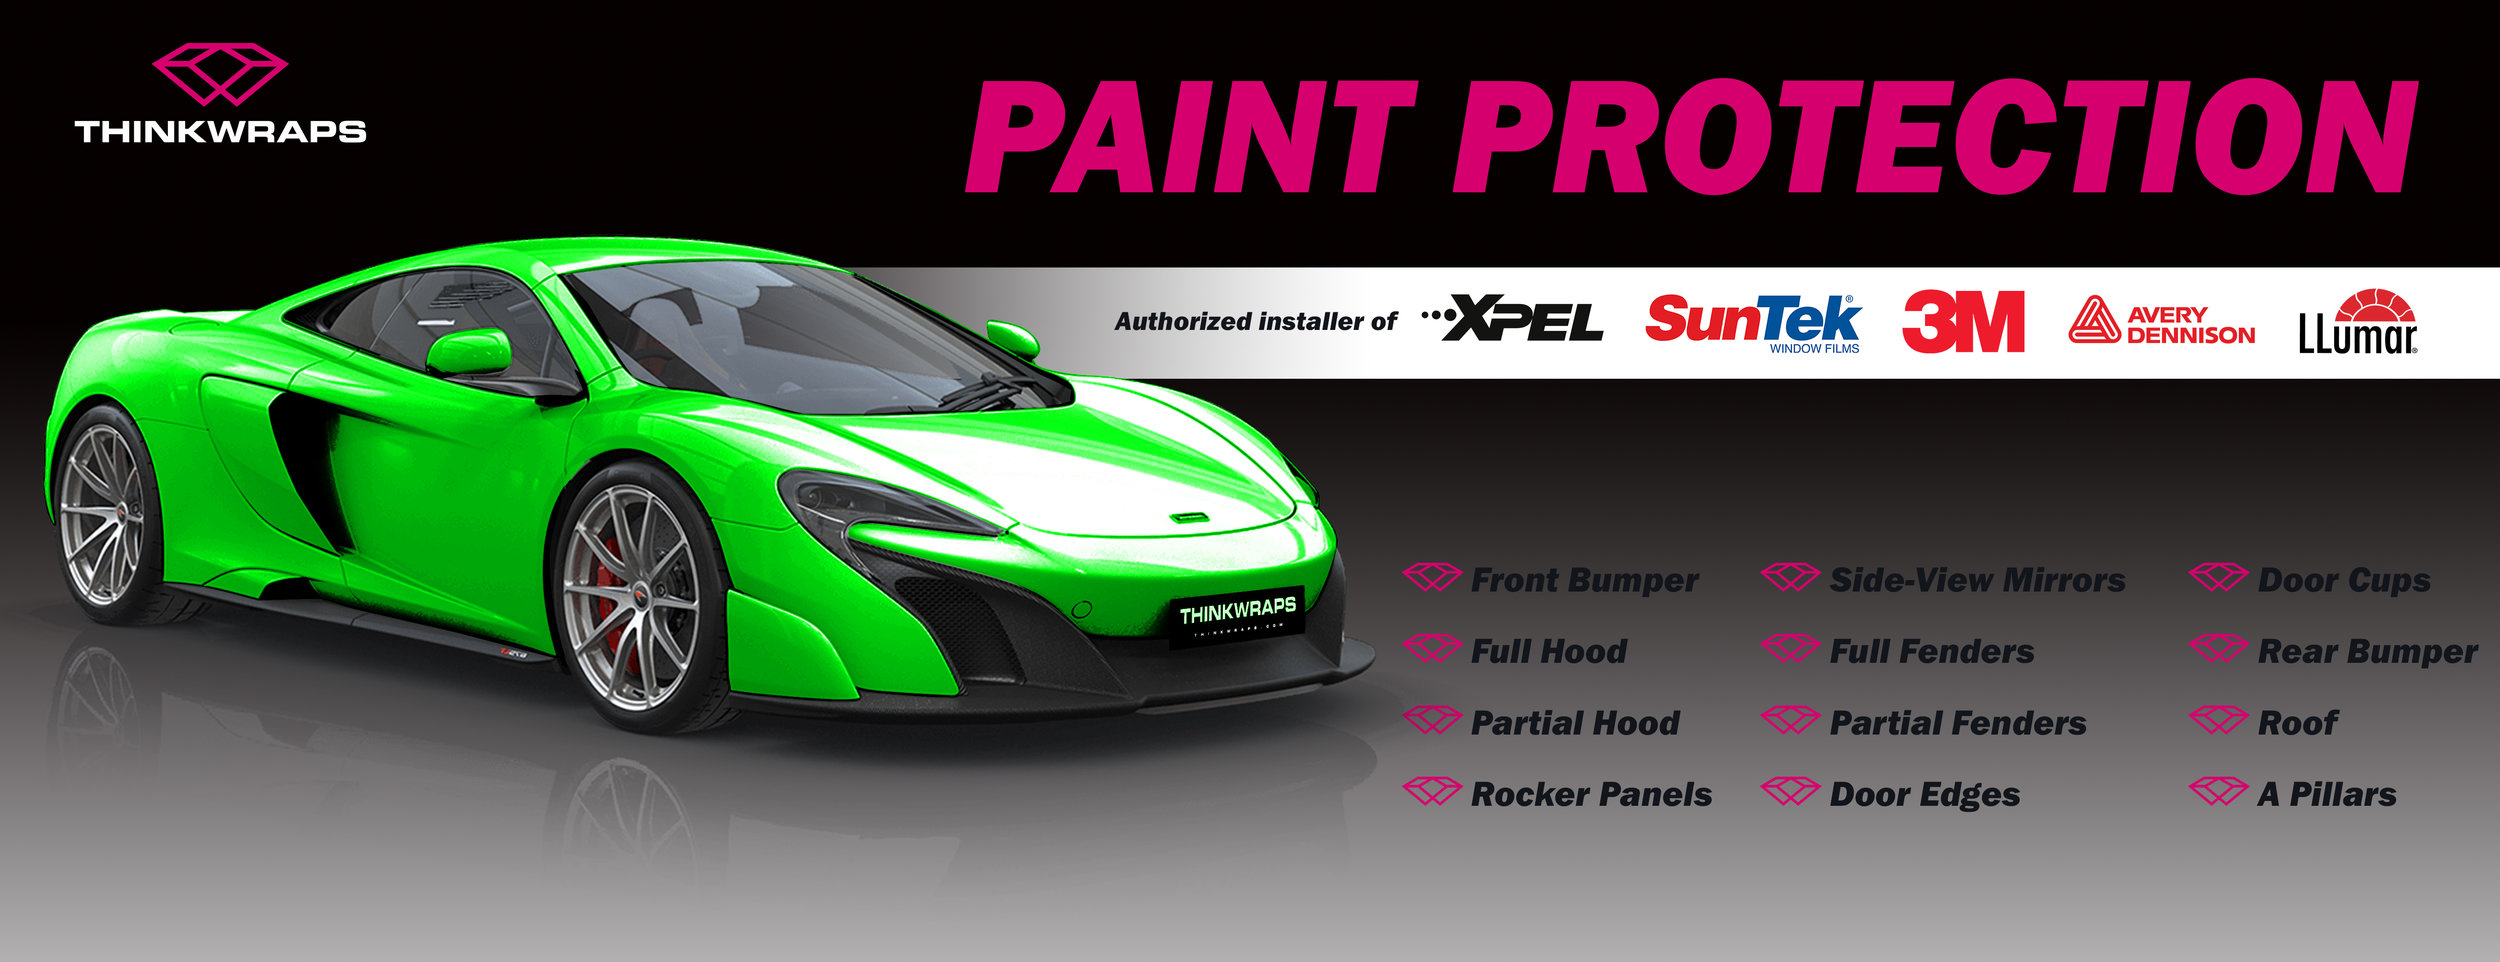 paint-protection-slider.jpg